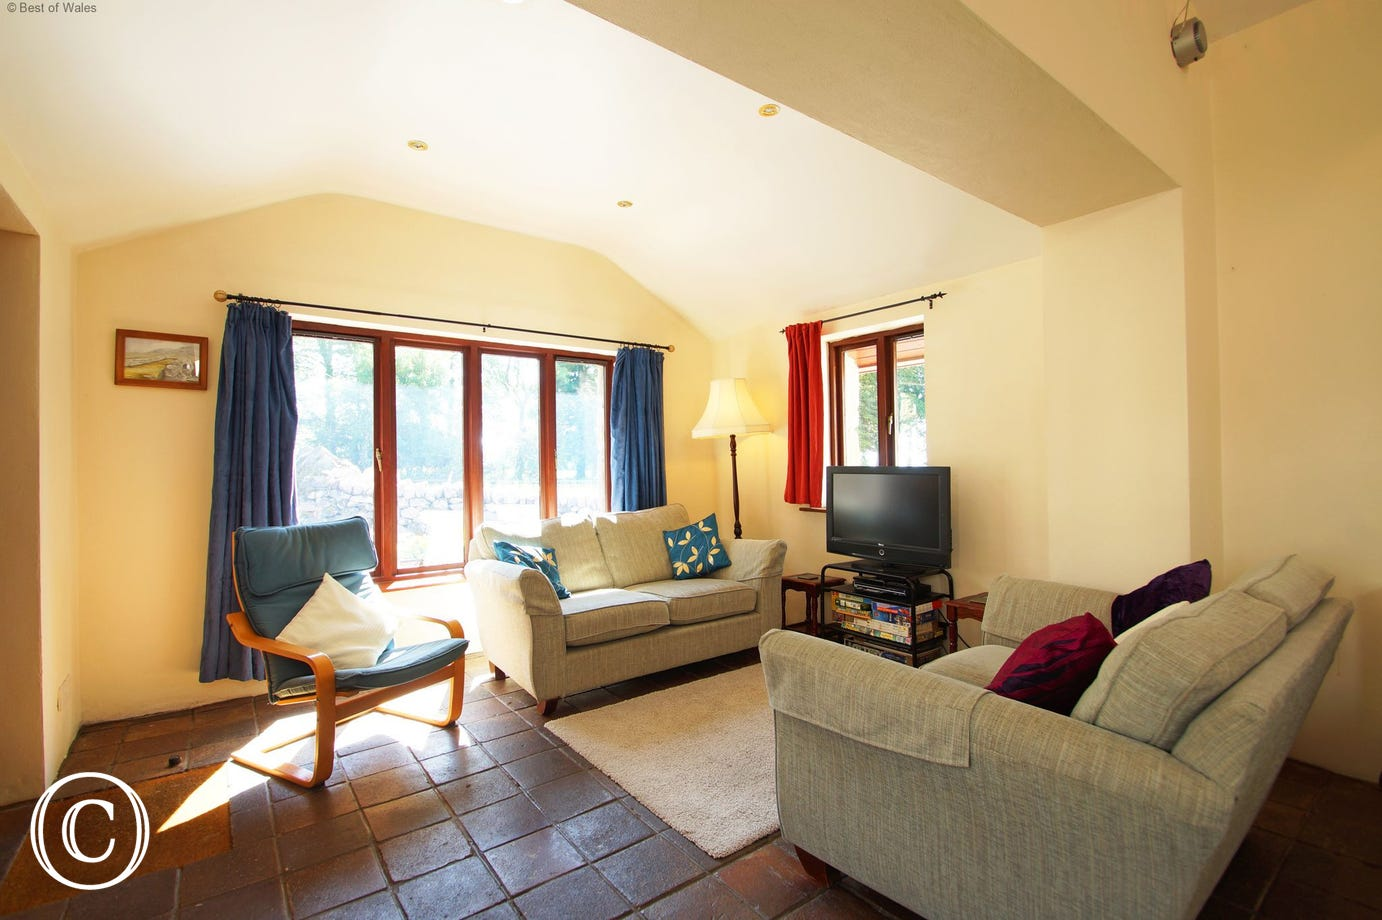 Luxury Llanberis holiday cottage in beautiful Snowdonia countryside